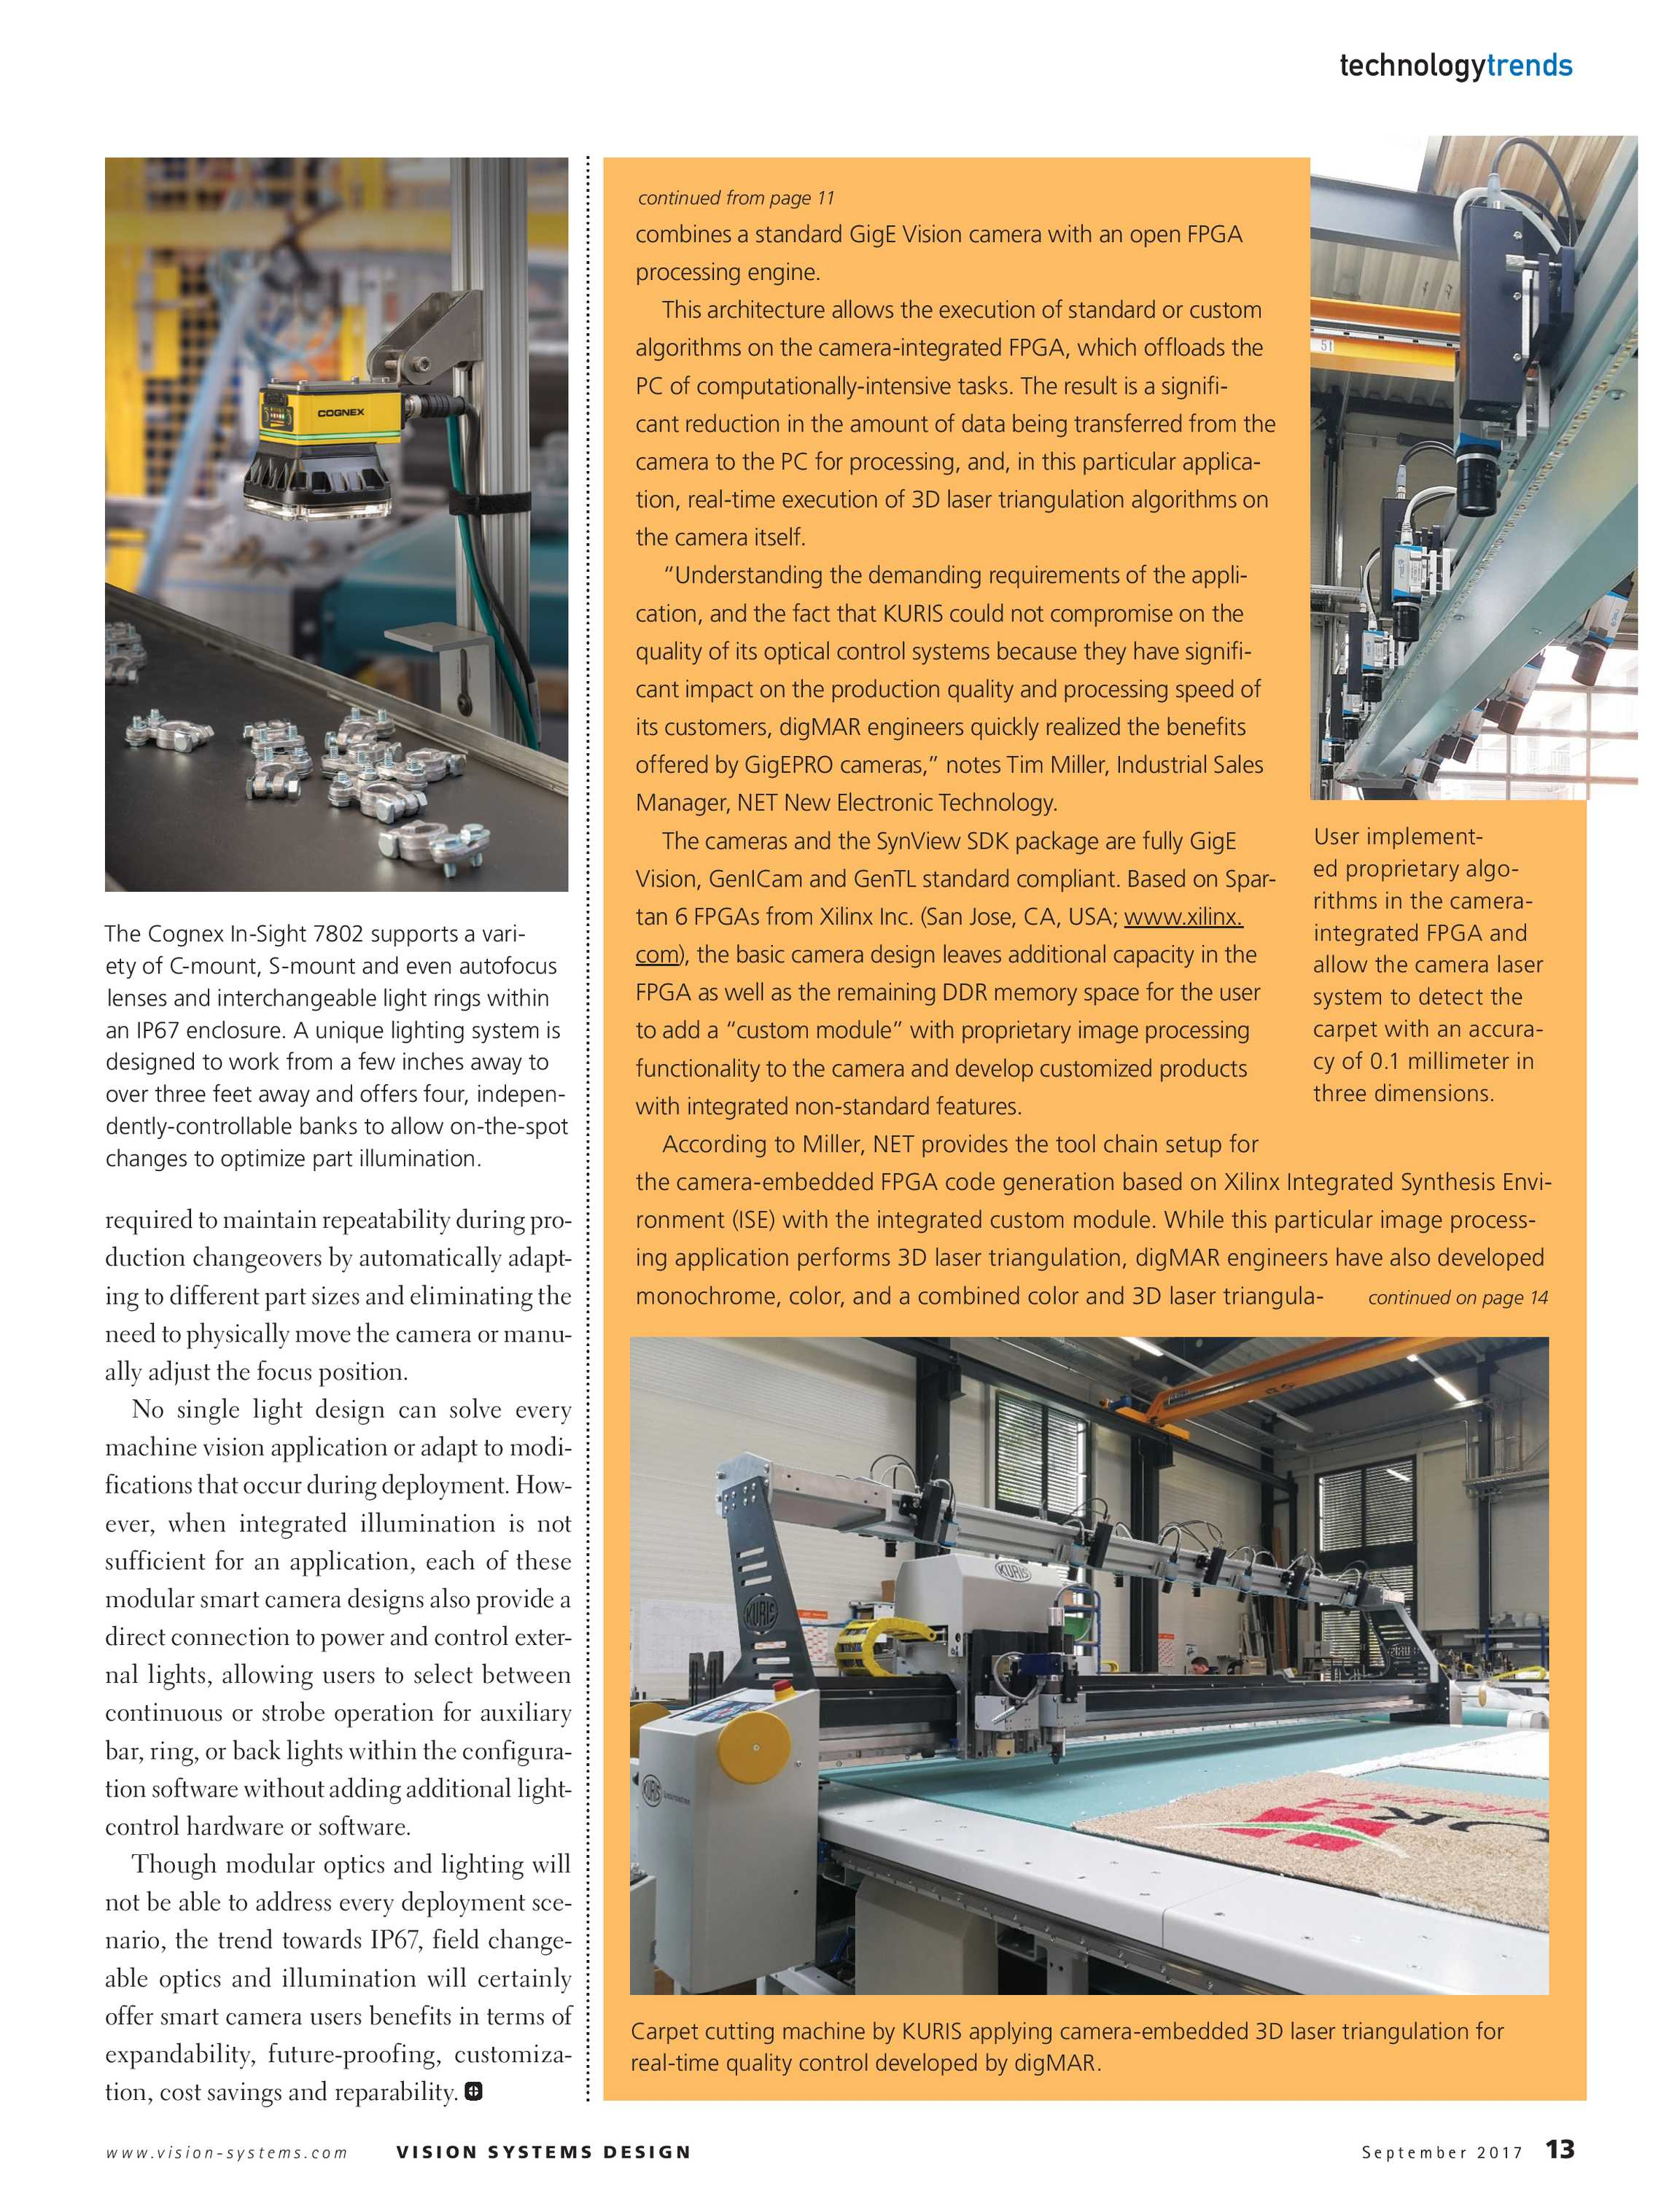 Vision Systems - September 2017 - page 13